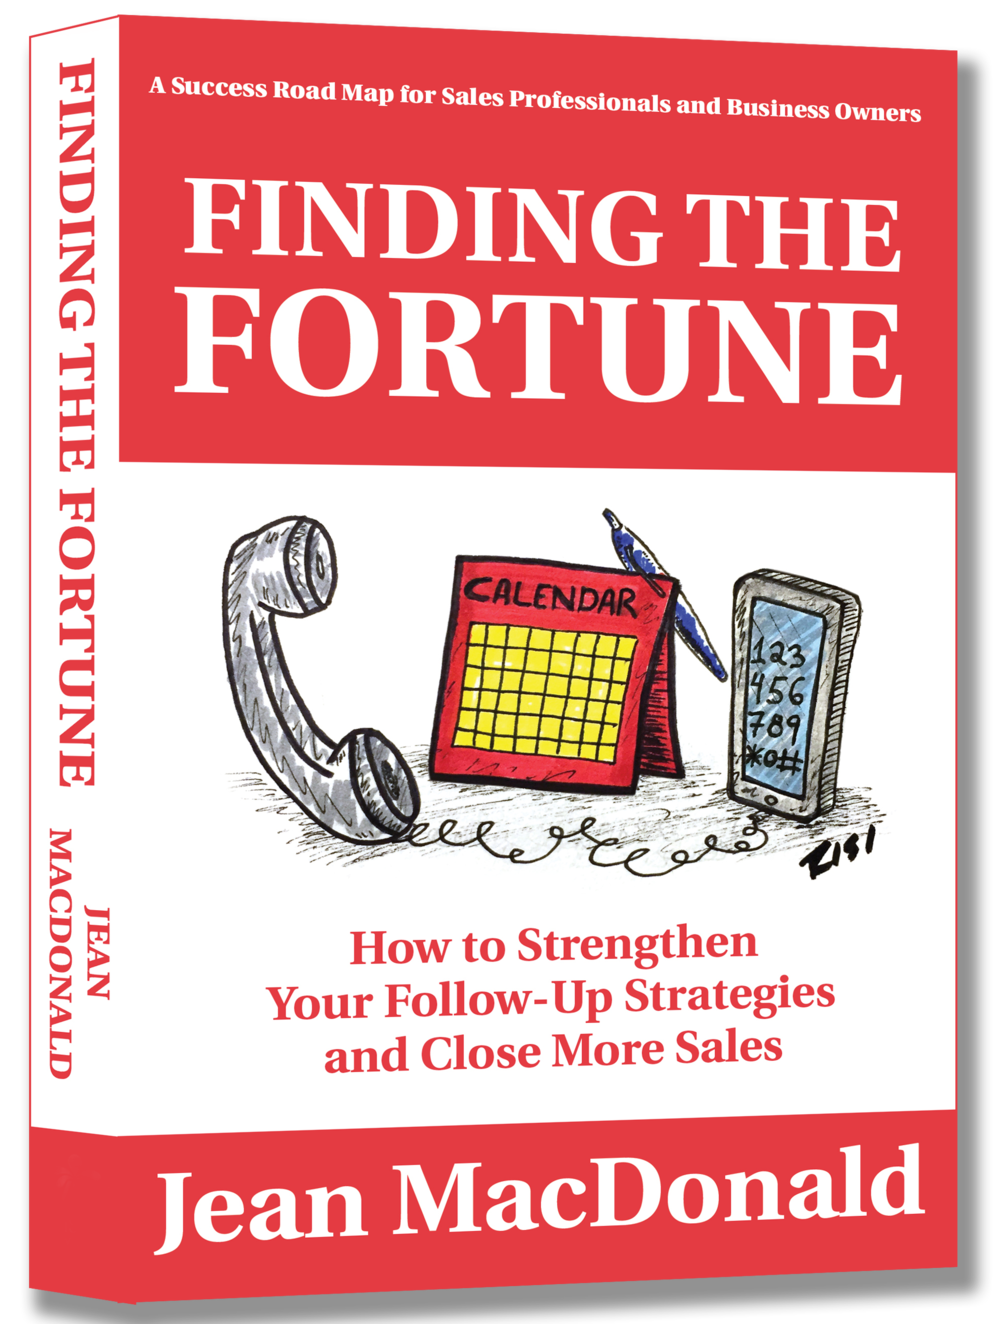 Finding-the-Fortune-Cover[1].png